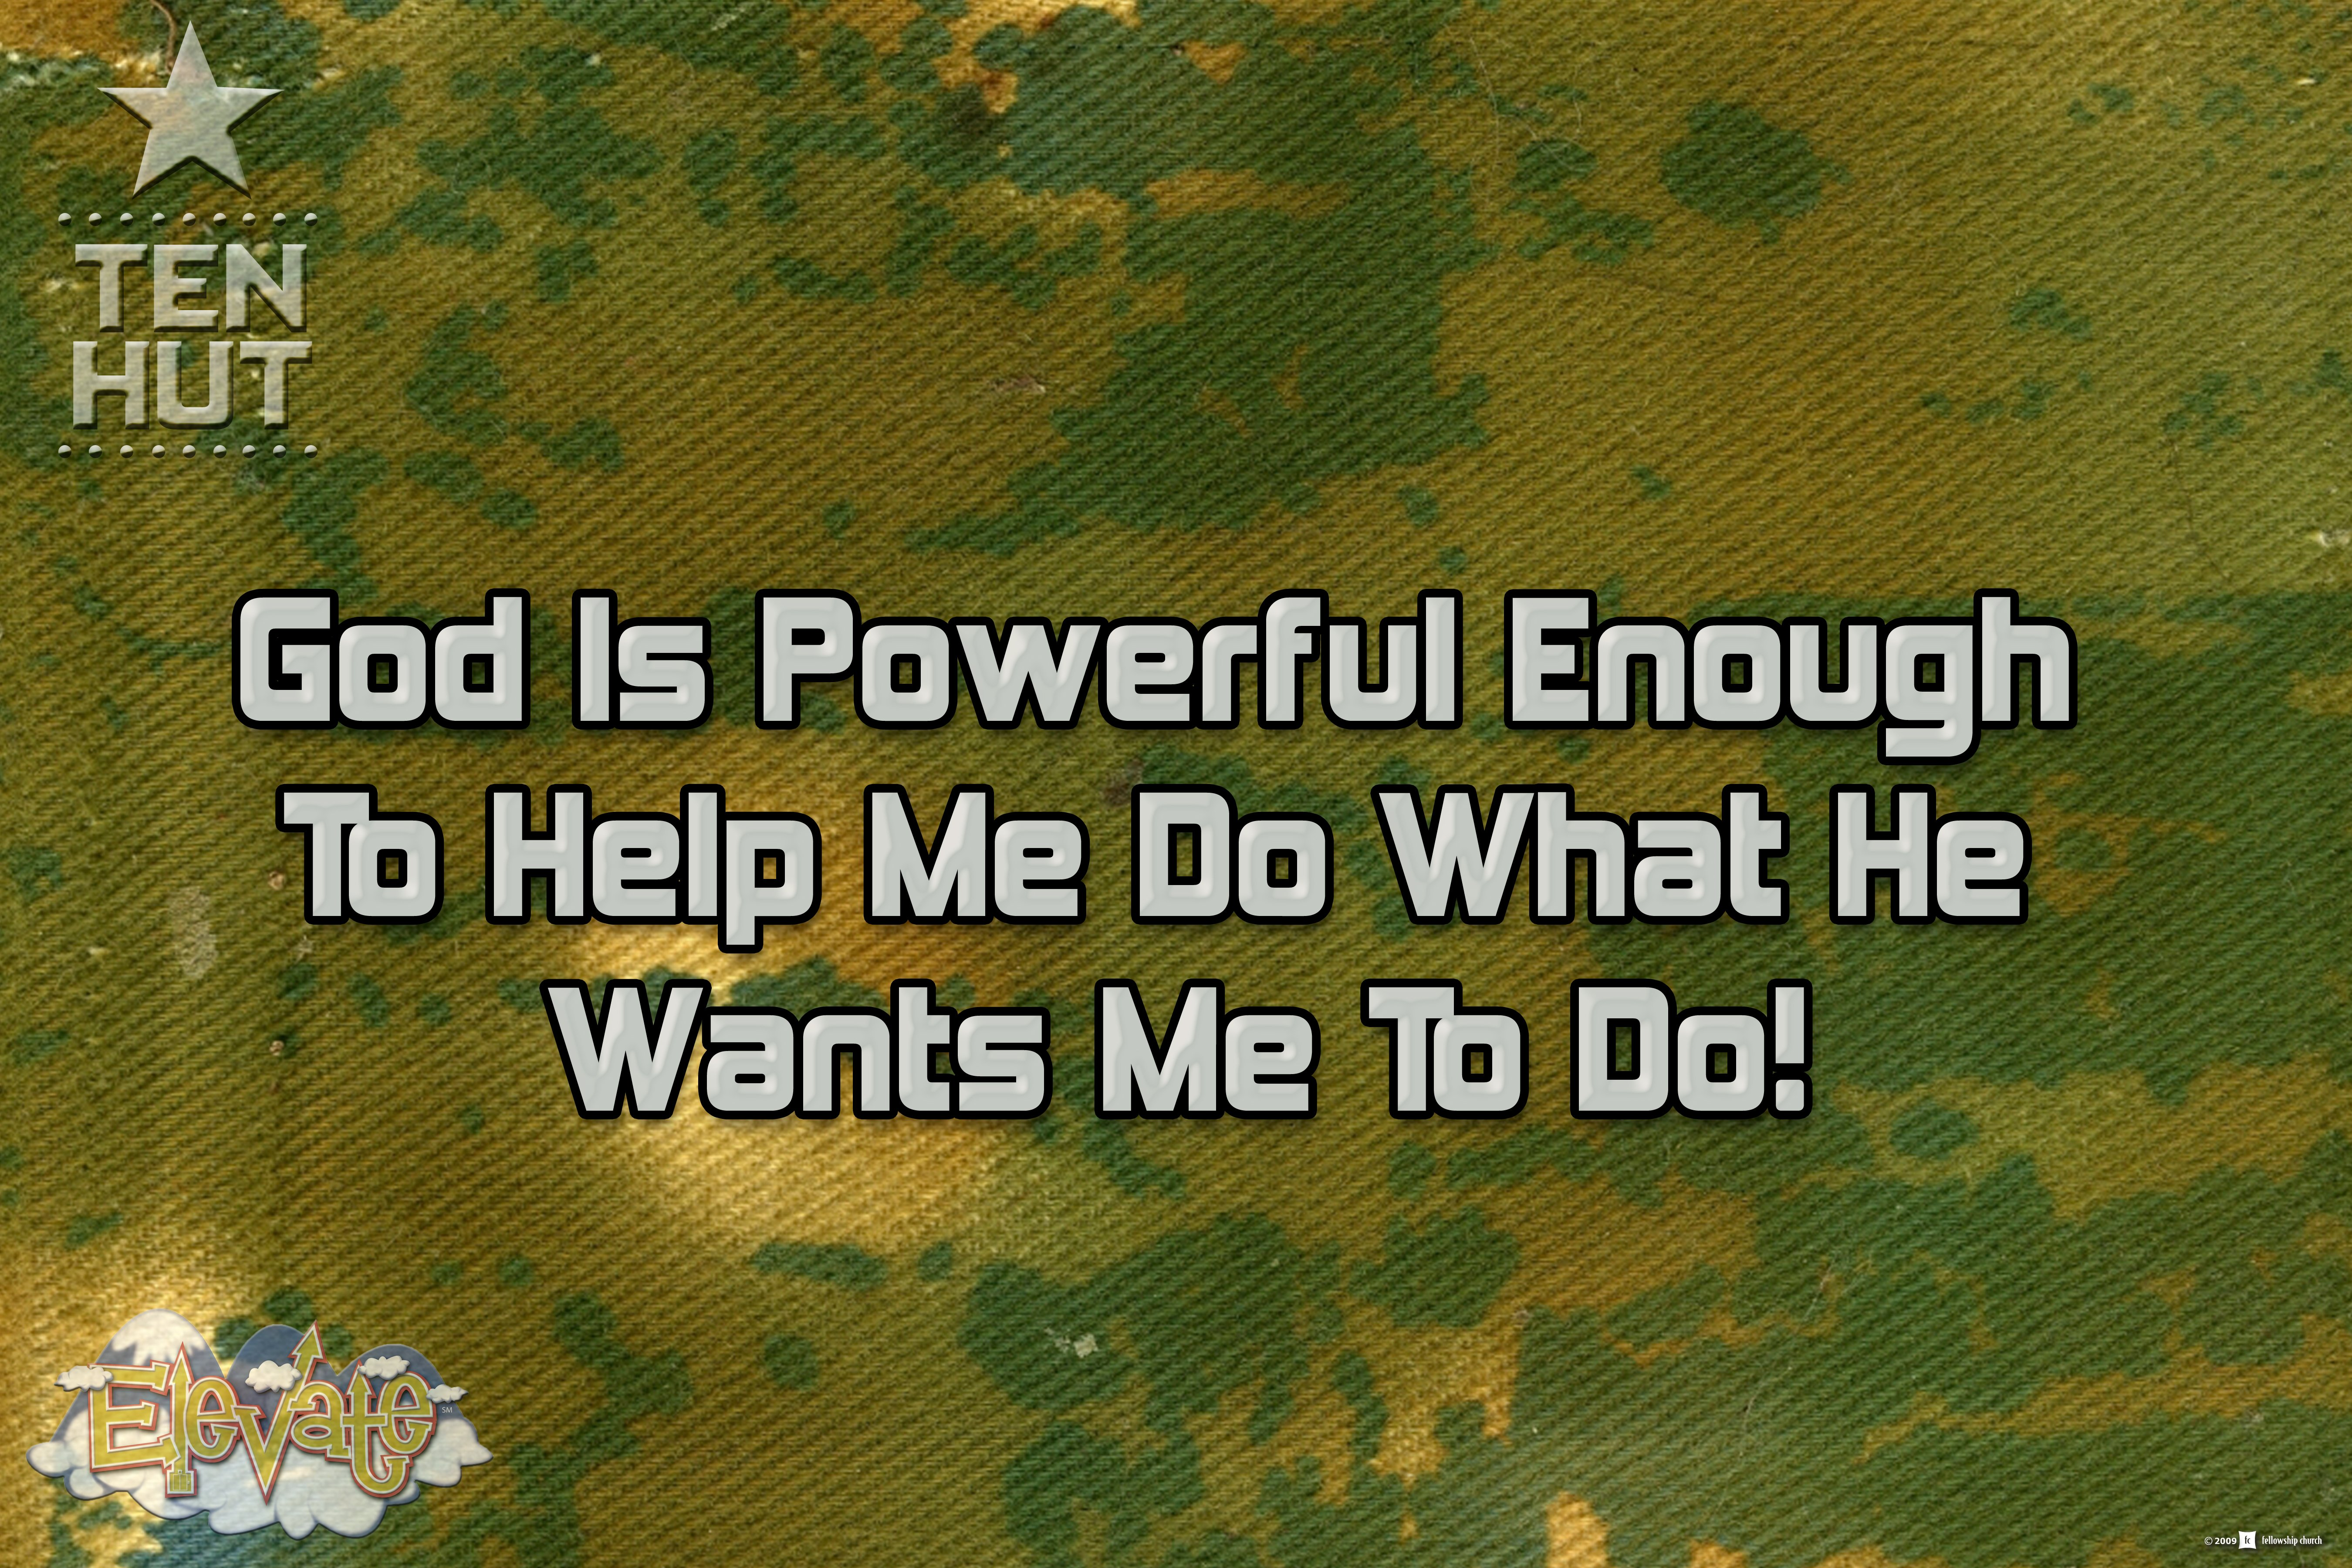 Jan. 6 | 9:30am | God is Powerful Enough to Help Me Do What He Wants Me to Do!